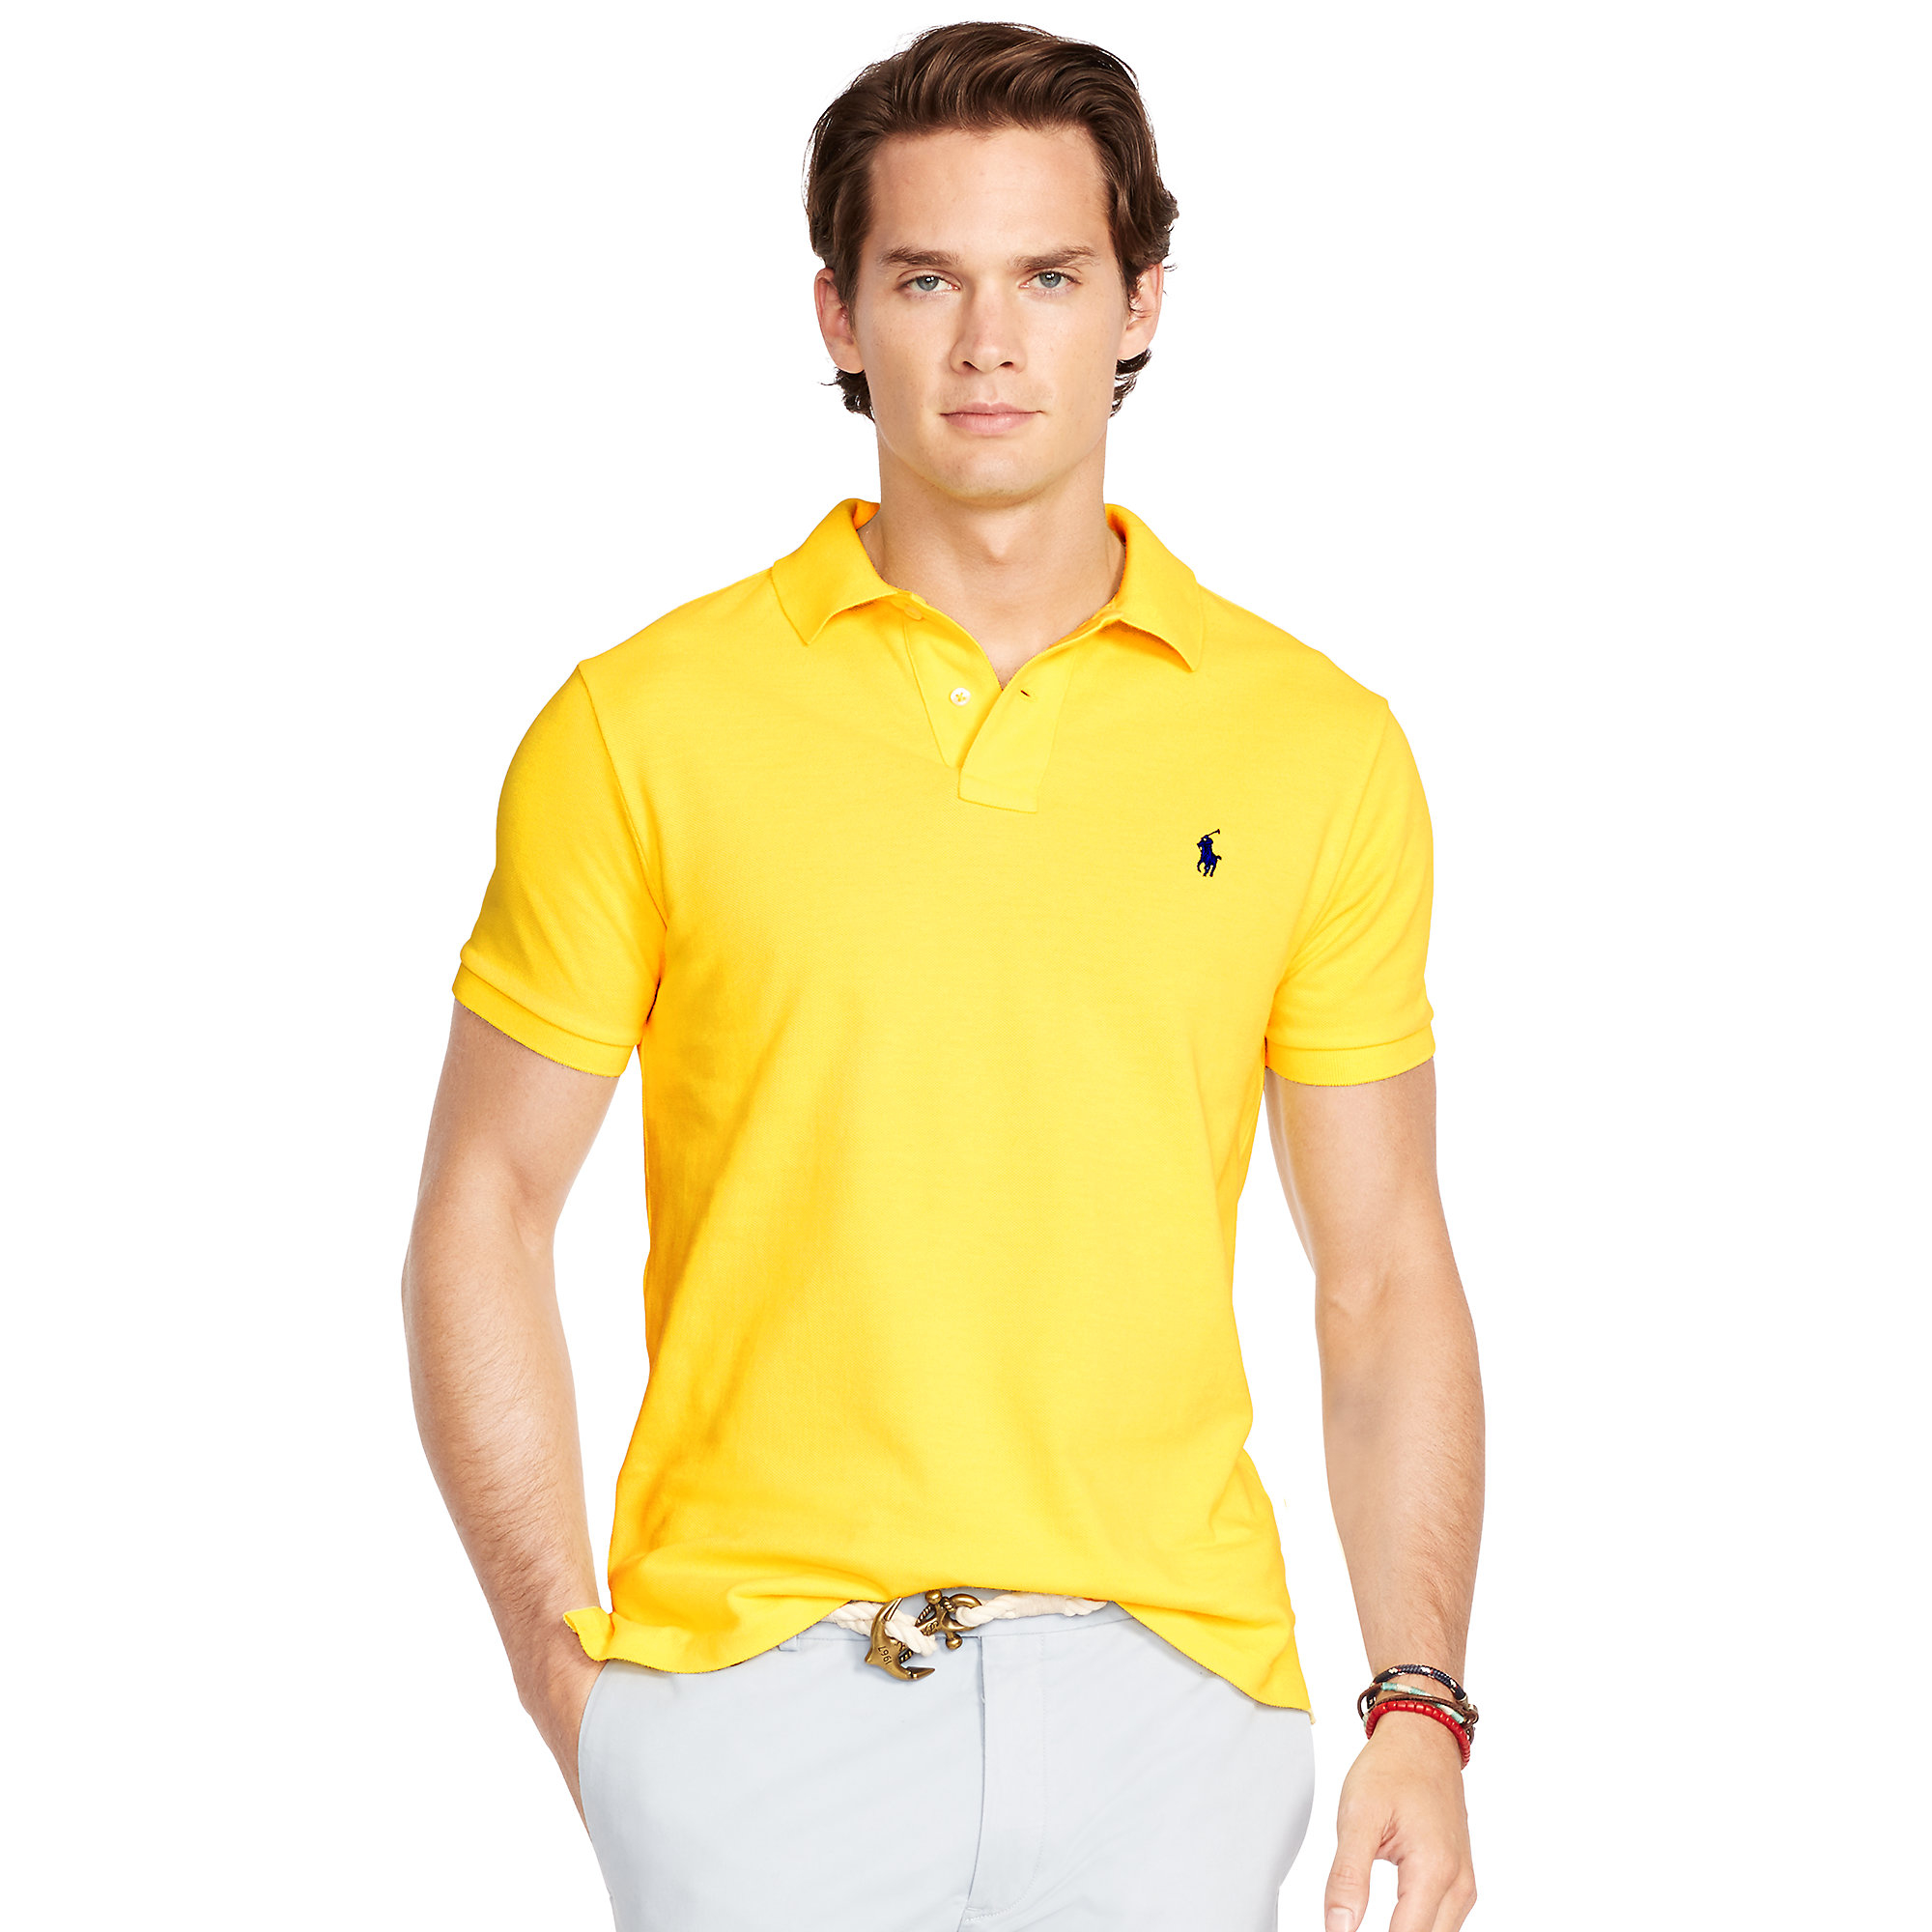 9ffc84806d71c Lyst - Polo Ralph Lauren Slim-fit Mesh Polo Shirt in Yellow for Men